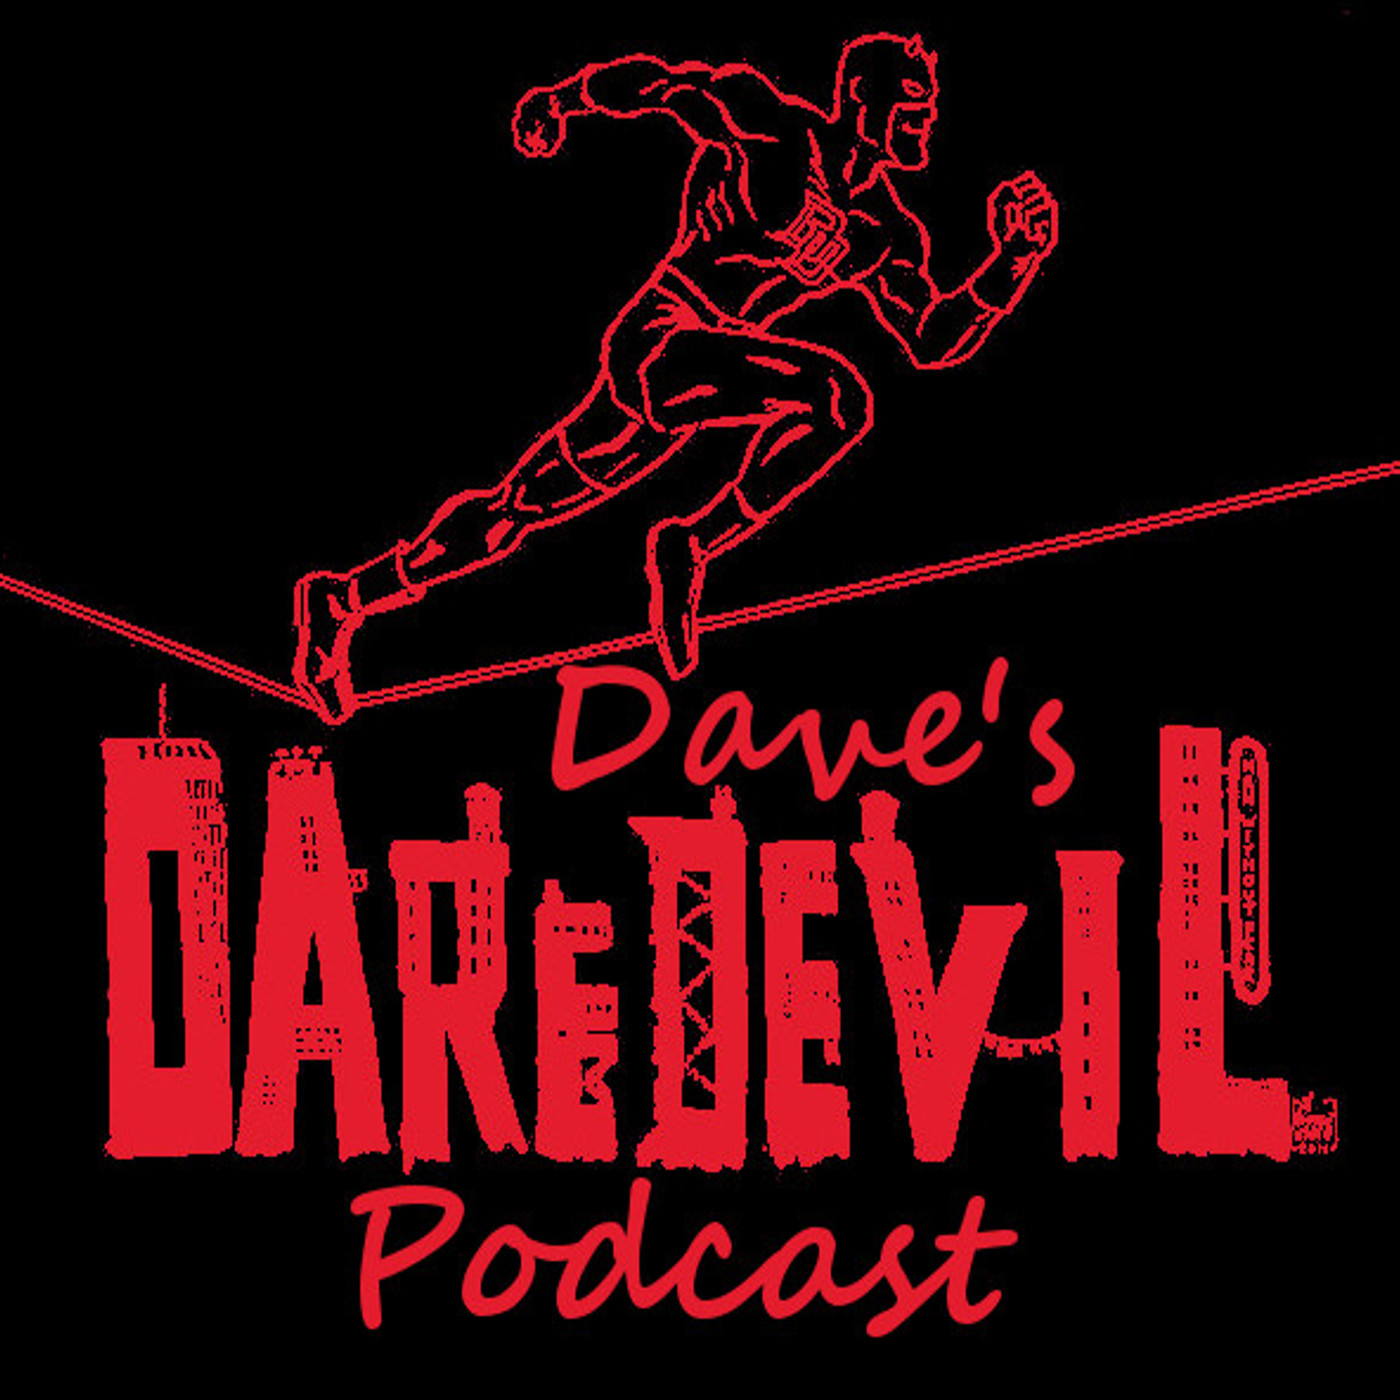 Dave Does Podcasts